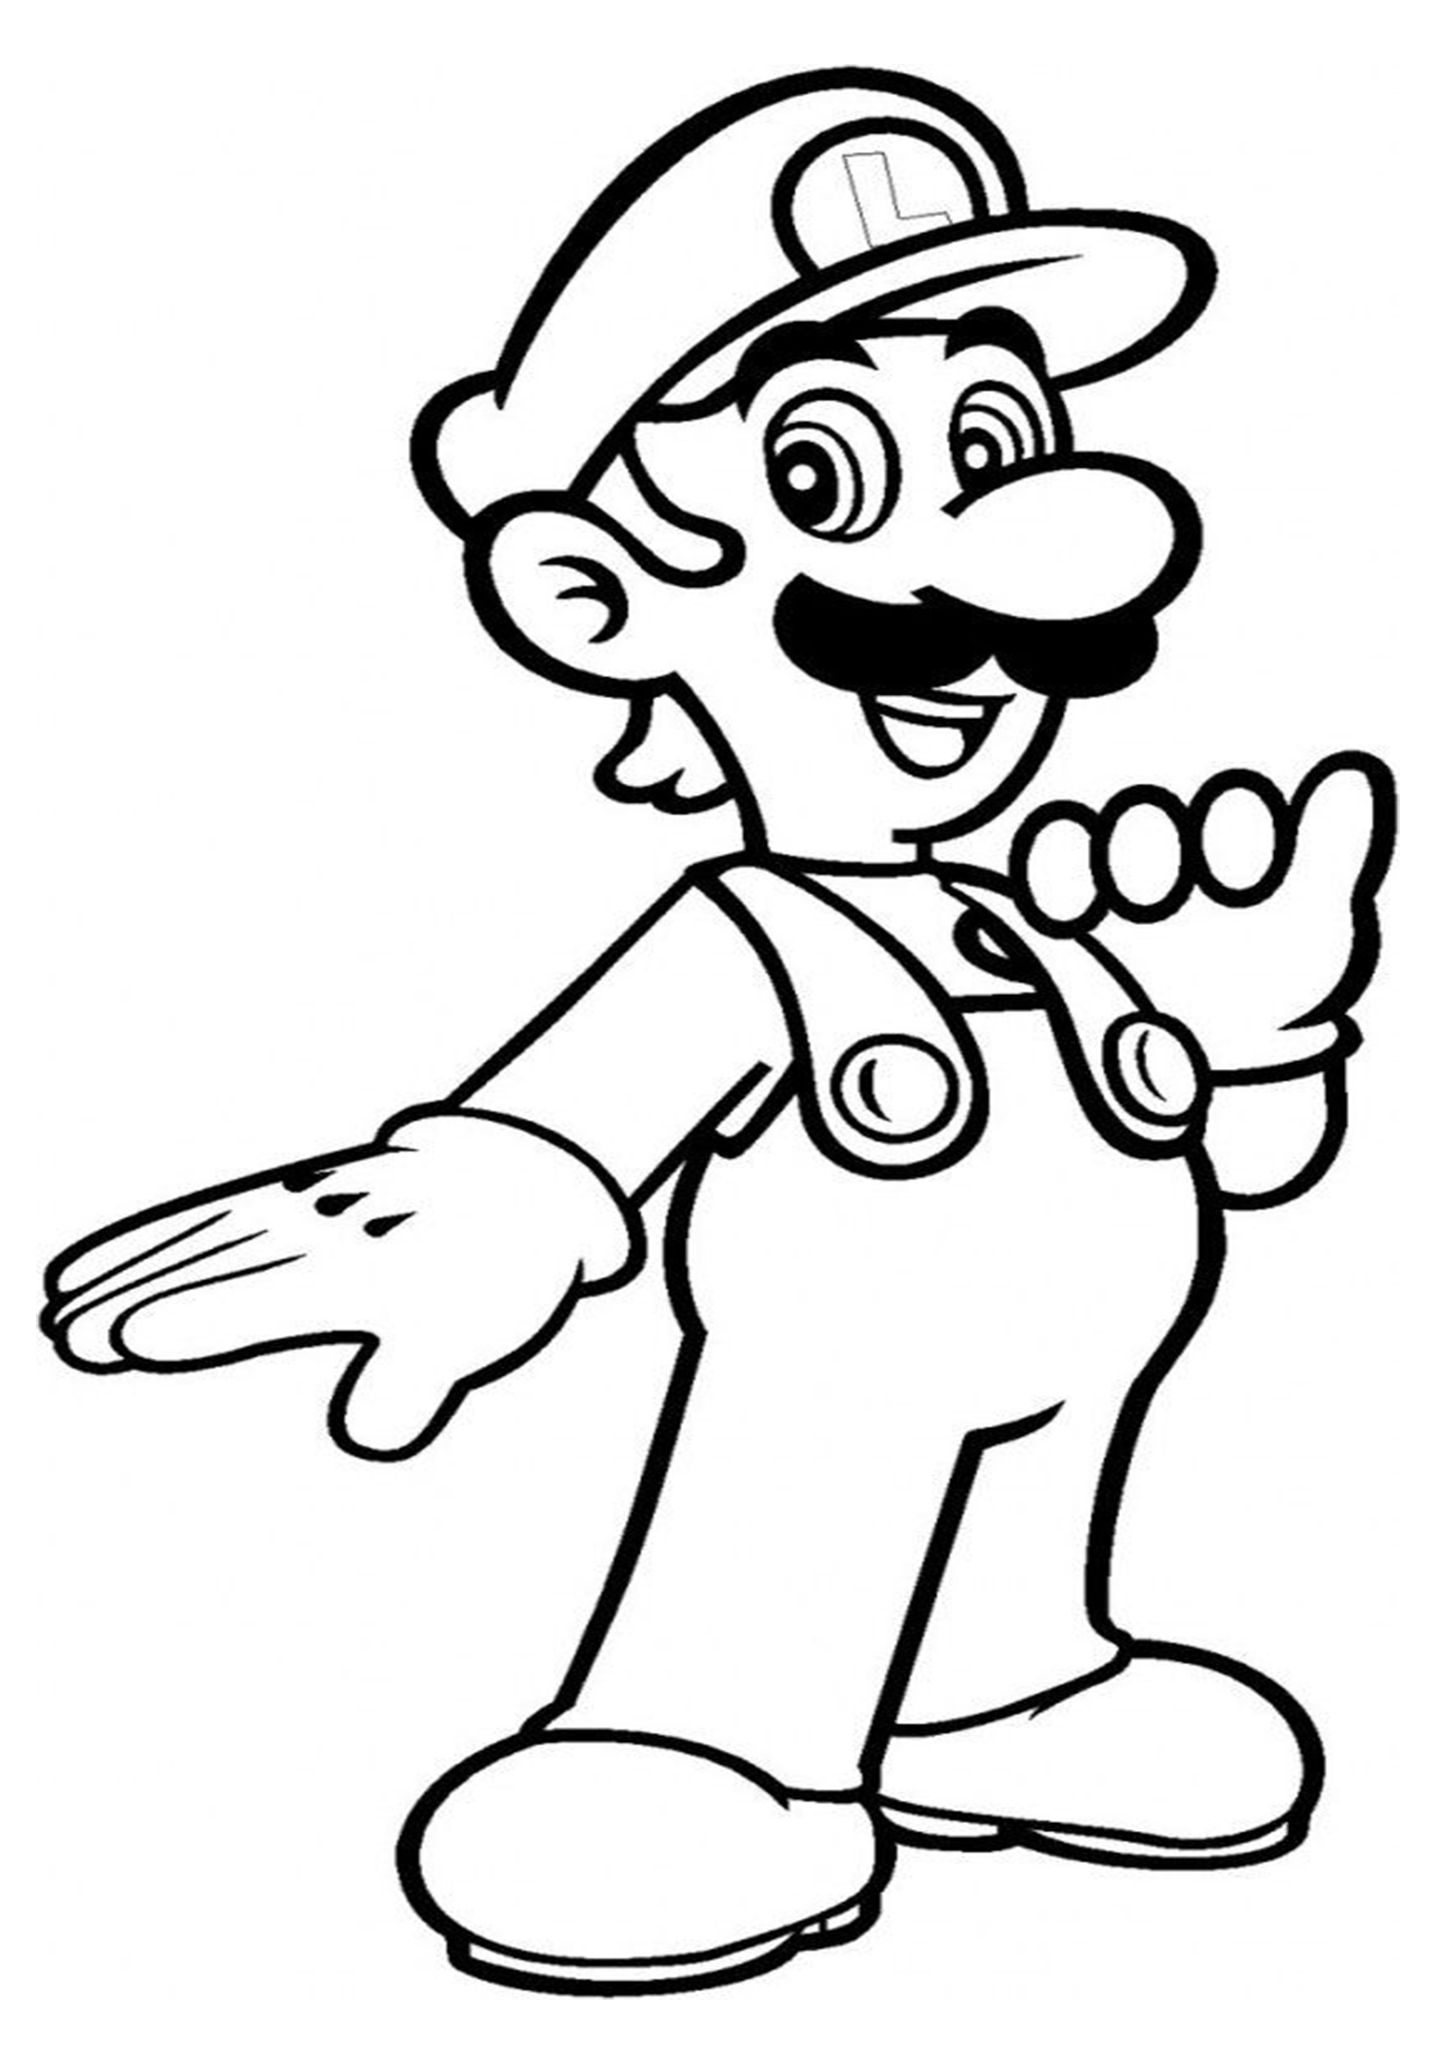 35+ Printable sonic and mario coloring pages ideas